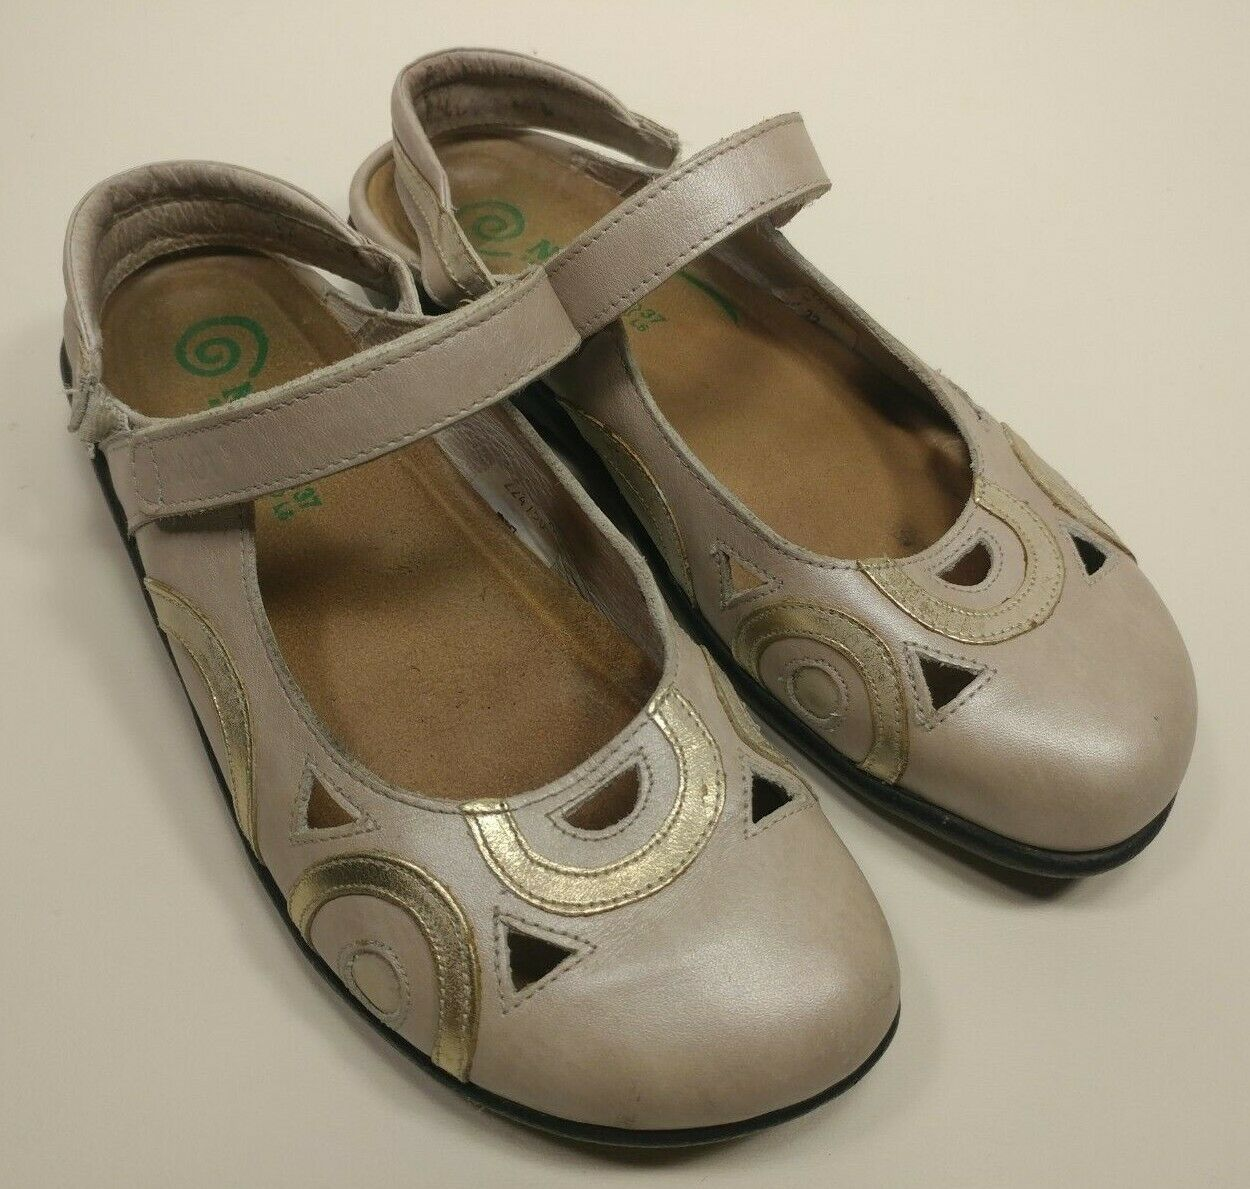 Naot Circle Detail Womens Size 6 Sandals Beige Slip On Mary Jane Slingback Mules